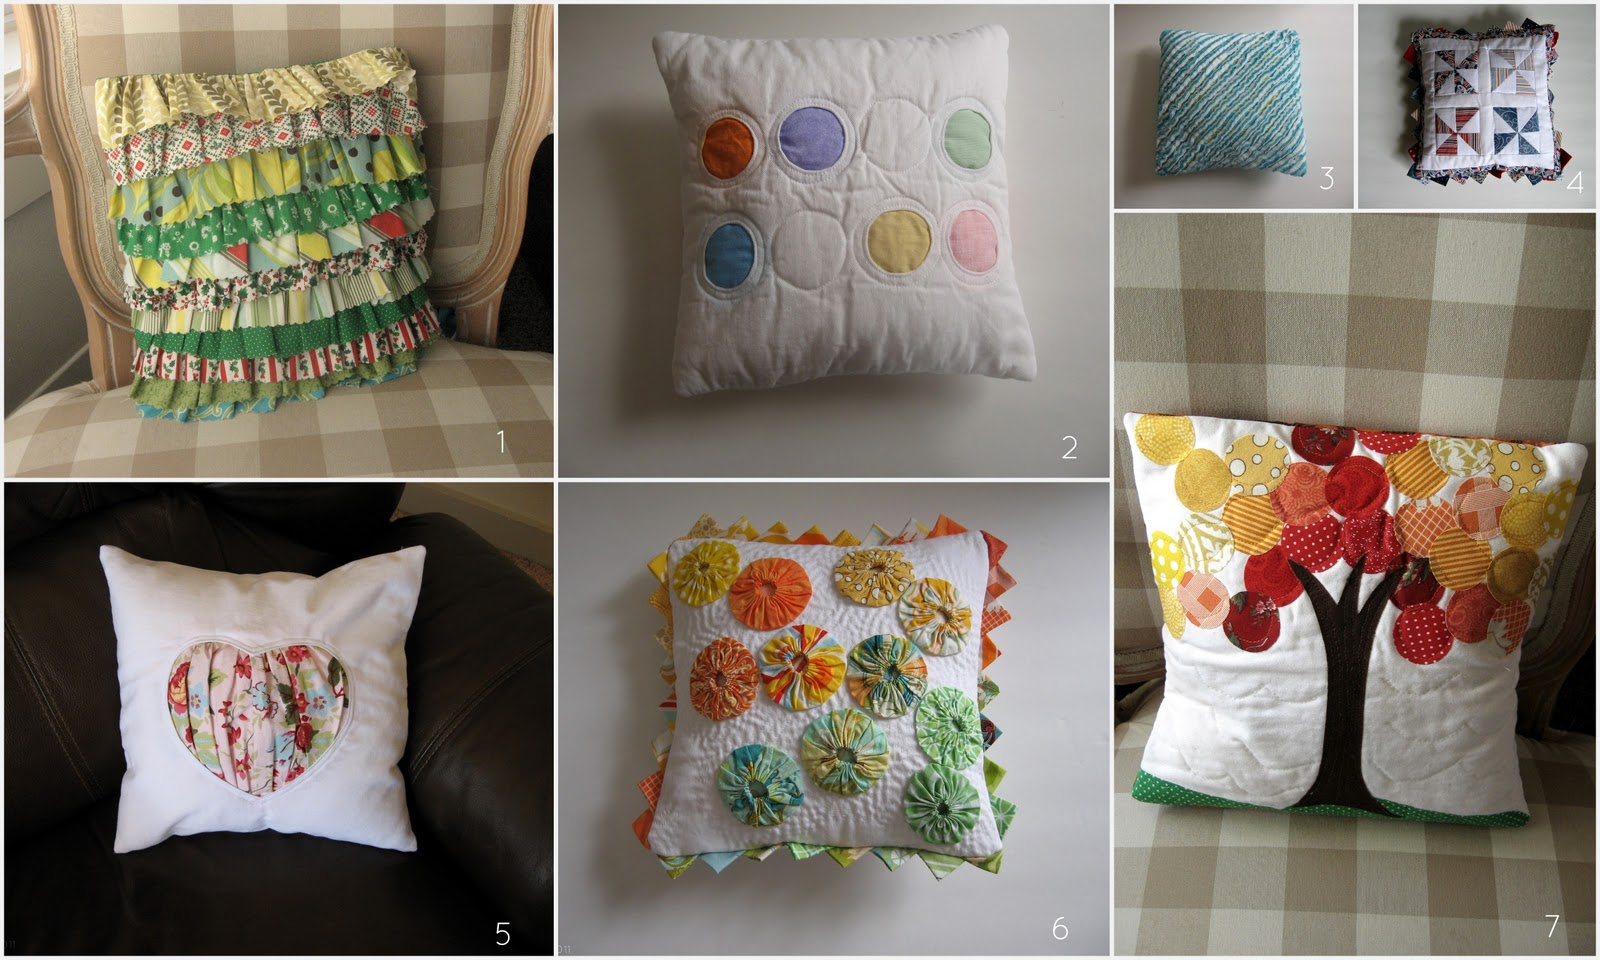 Ruffled Christmas Pillow Cover Tutorial & Pickup Some Creativity: Ruffled Christmas Pillow Cover Tutorial pillowsntoast.com